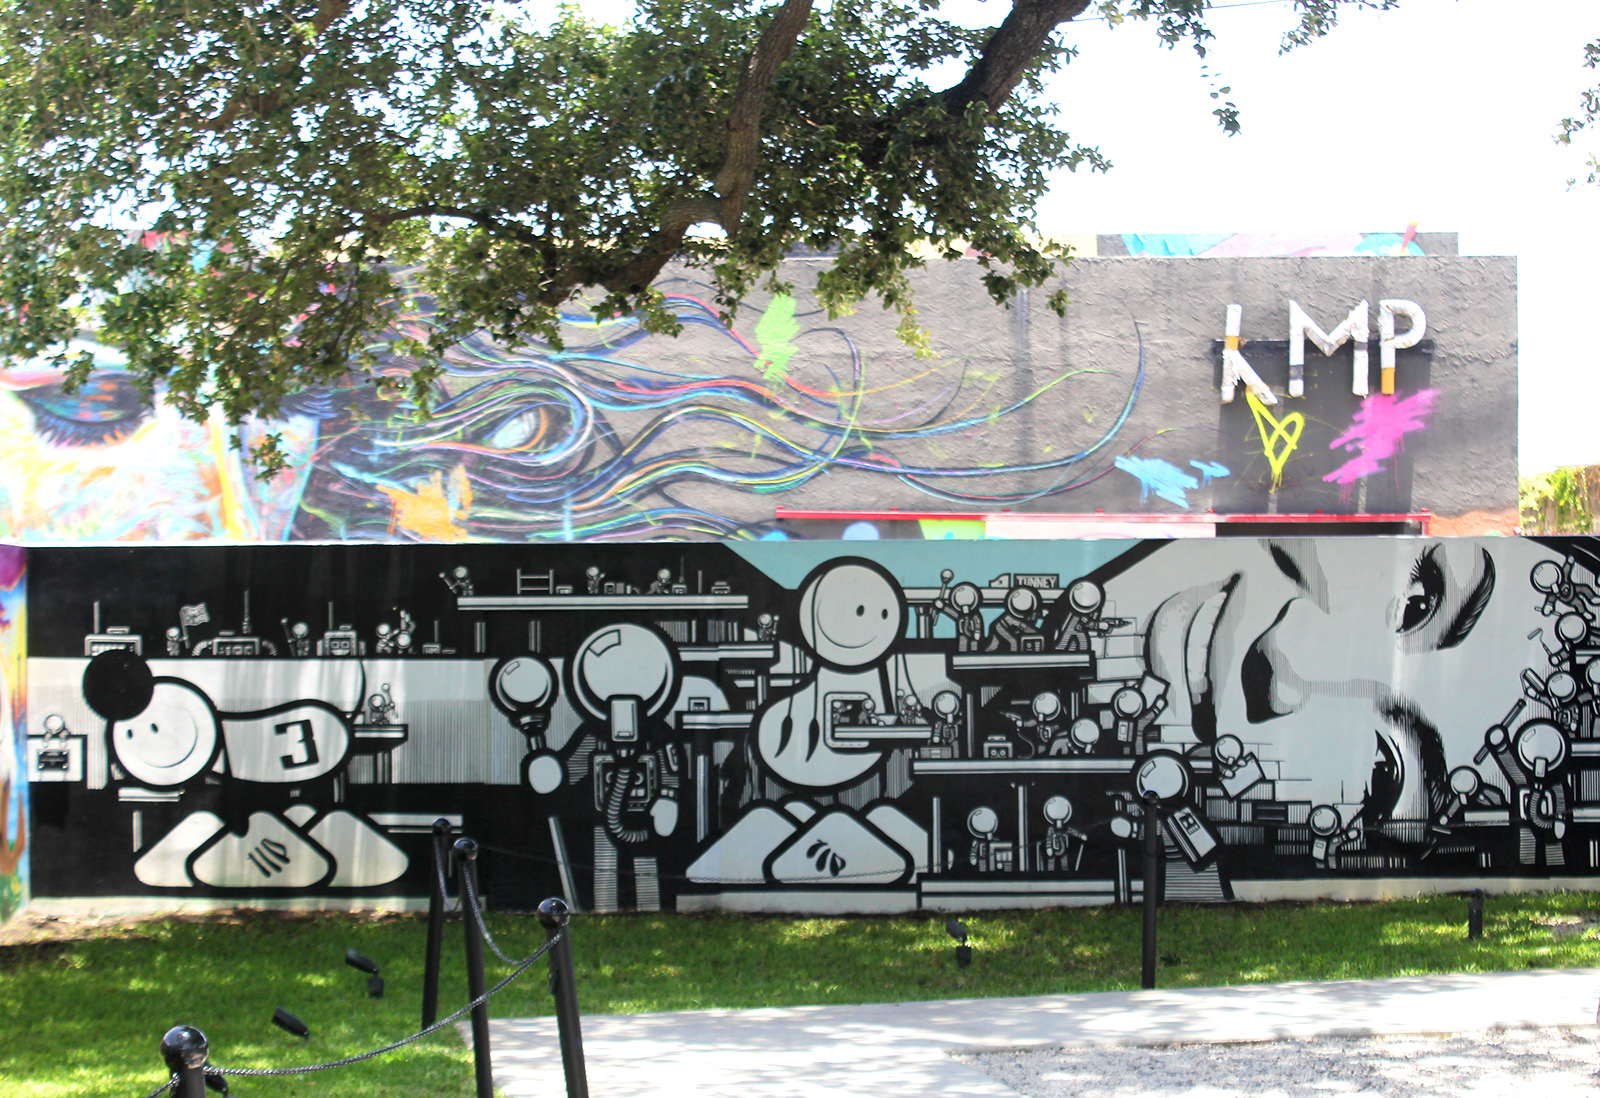 The London Police à Wynwood Walls